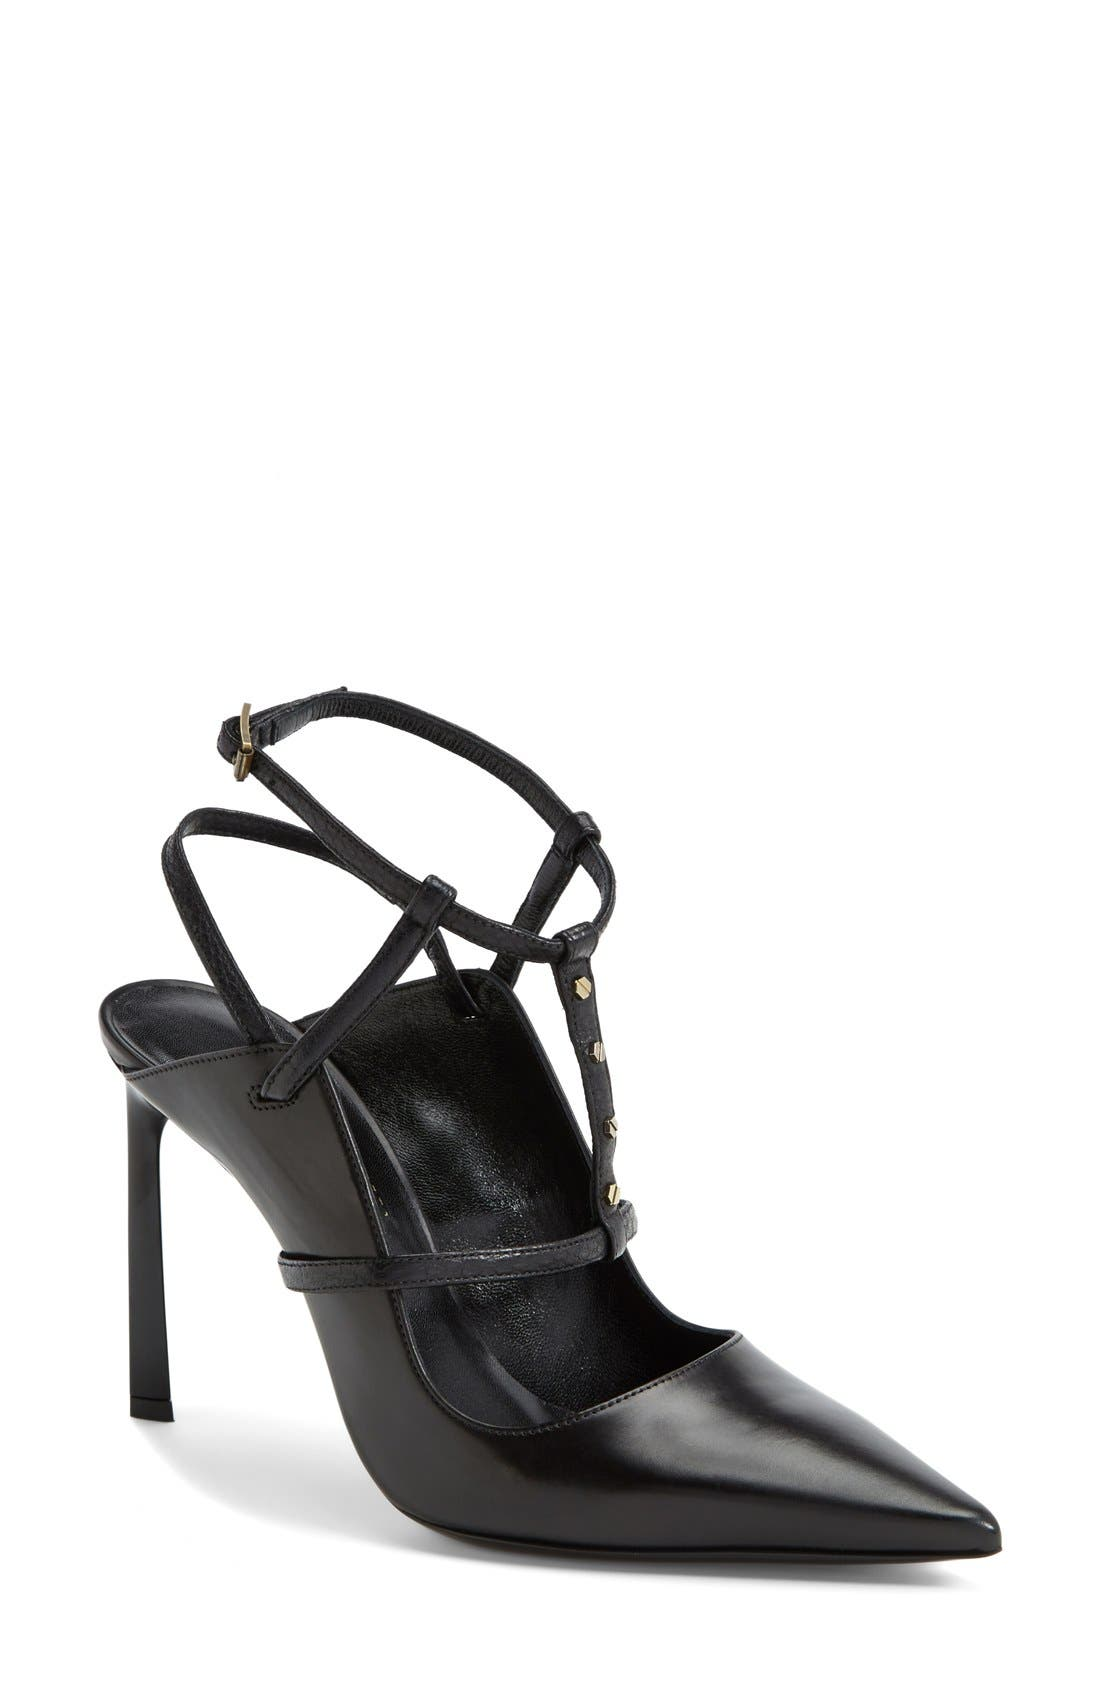 Main Image - Lanvin Studded T-Strap Leather Pump (Women)